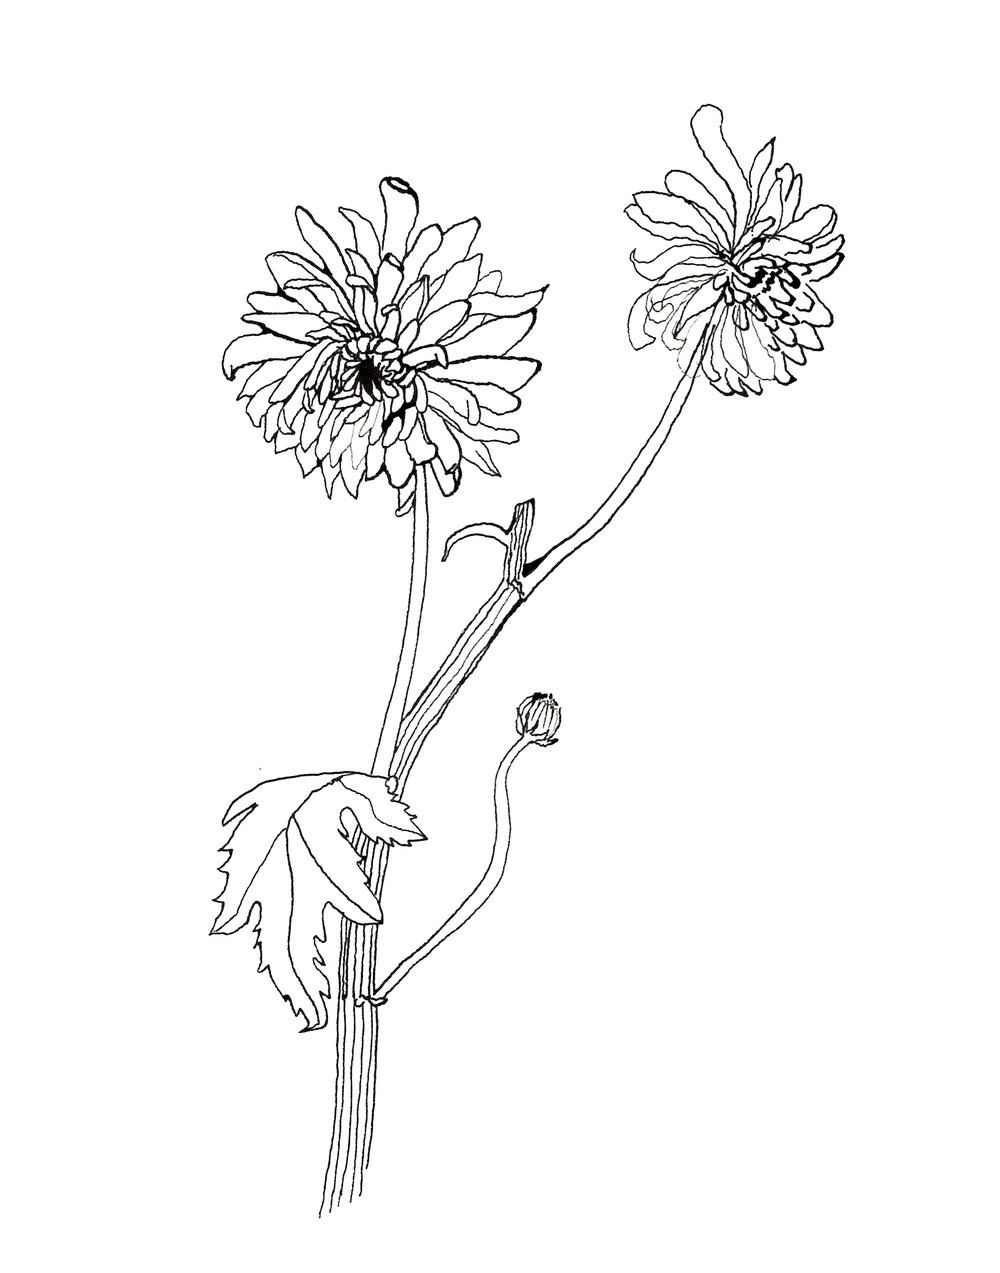 vicky_katzman_flower_line_drawing.jpg